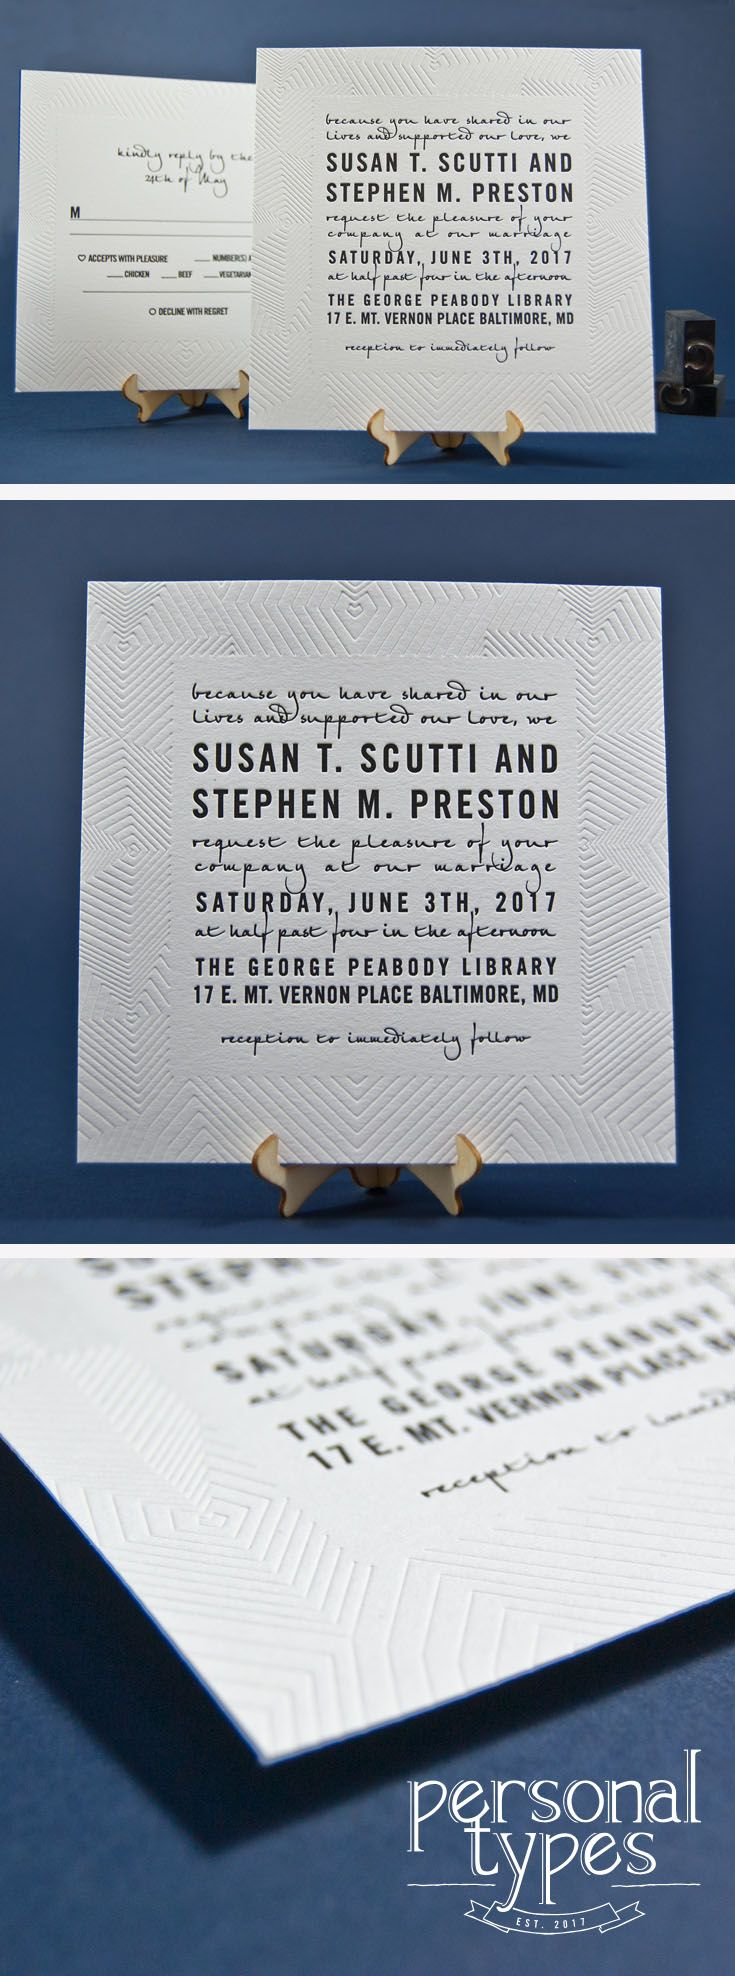 Modern Letterpress Wedding Invitation - This wedding suite not only has a clean, modern look, but each piece of this suite has an art deco heart texture pattern border surrounding all sides.